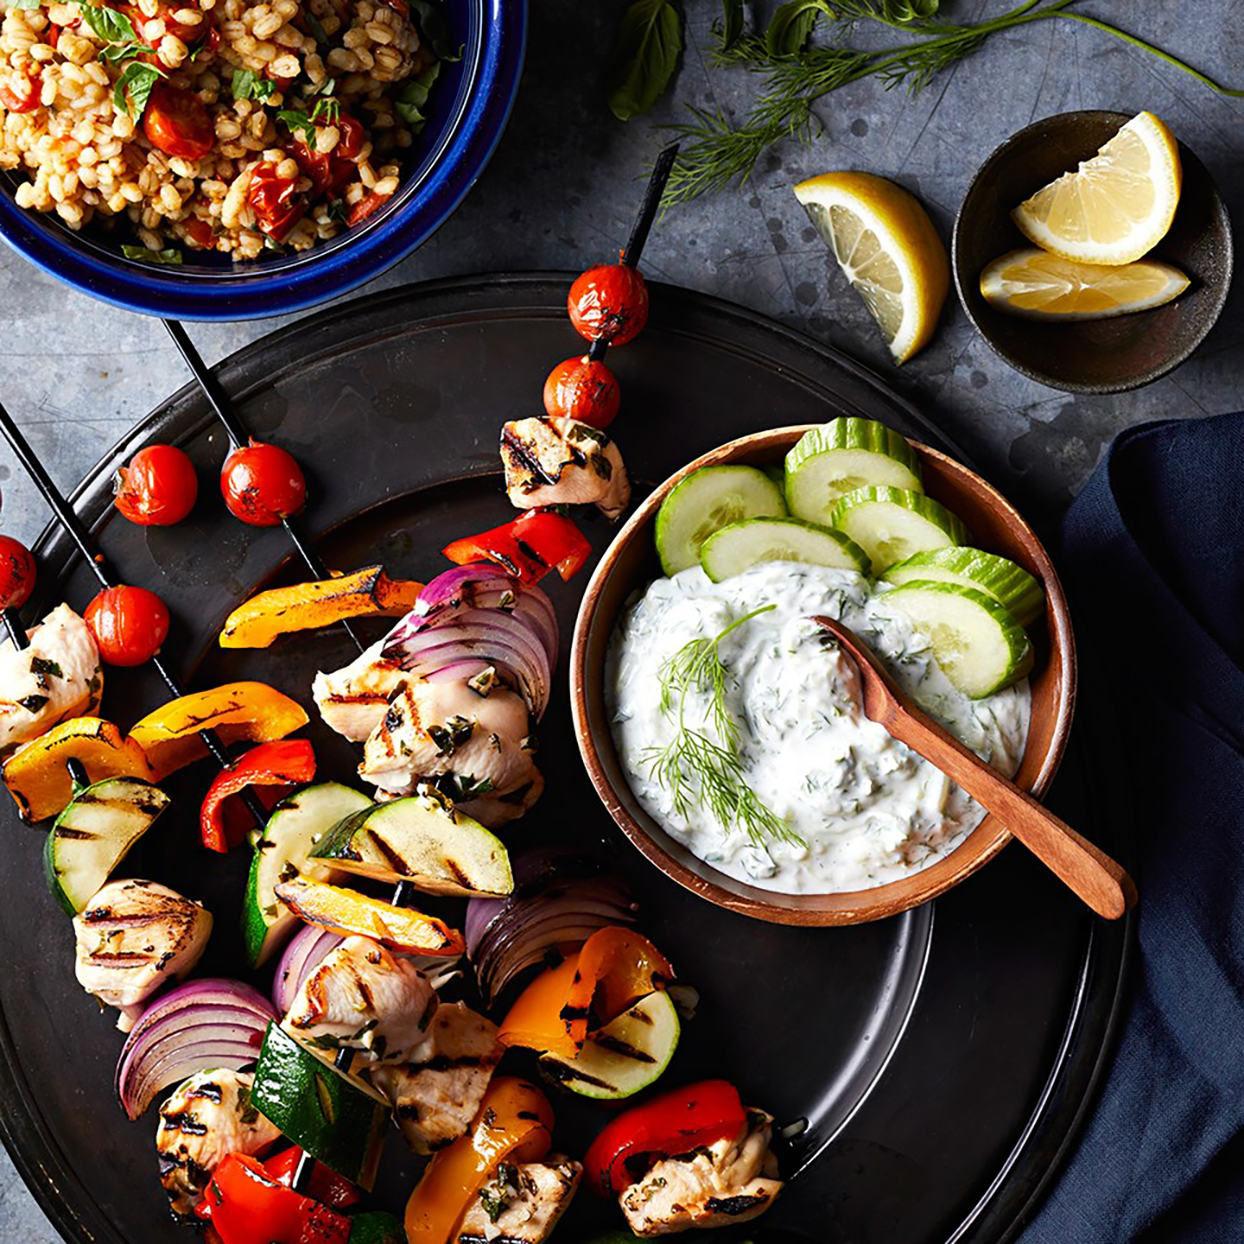 20 Mediterranean Diet Chicken Recipes That Are Full of Flavor